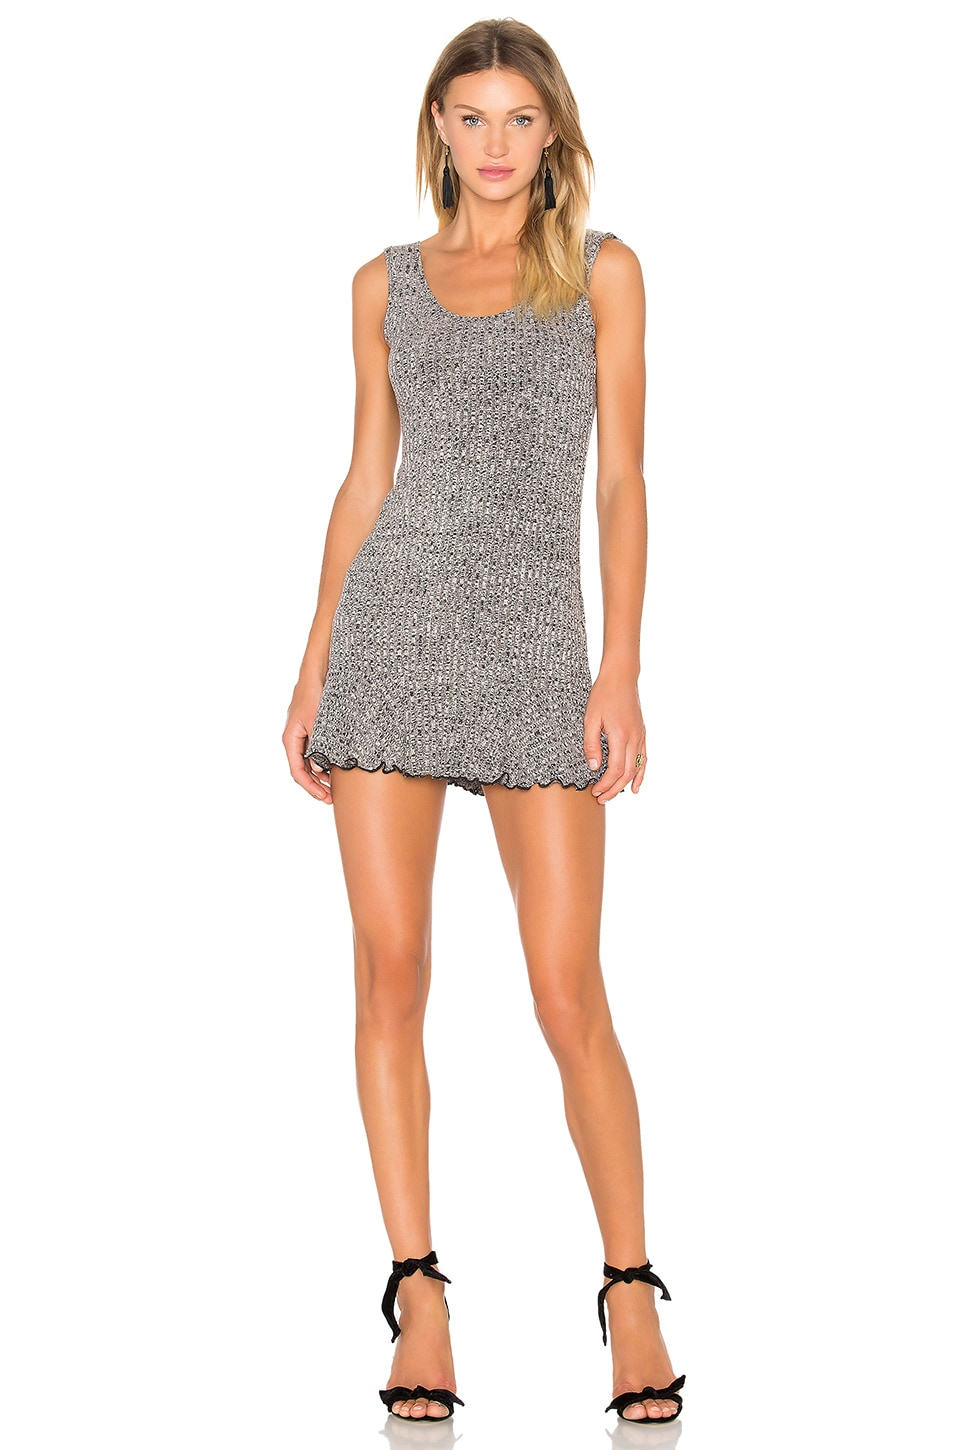 x REVOLVE There's Time Ribbed Dress by NBD